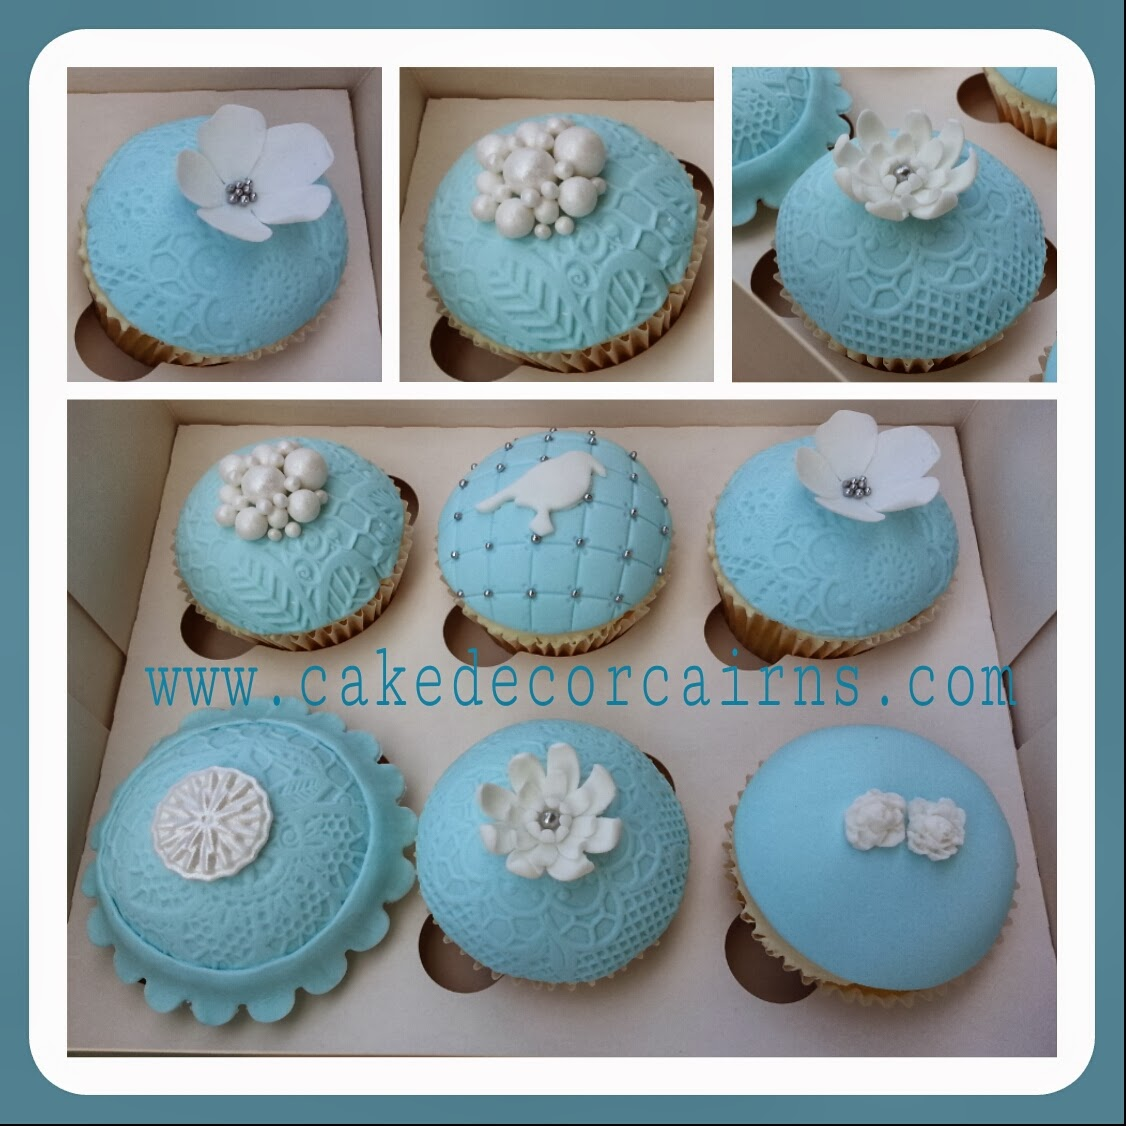 Pretty Blue and White Cupcakes